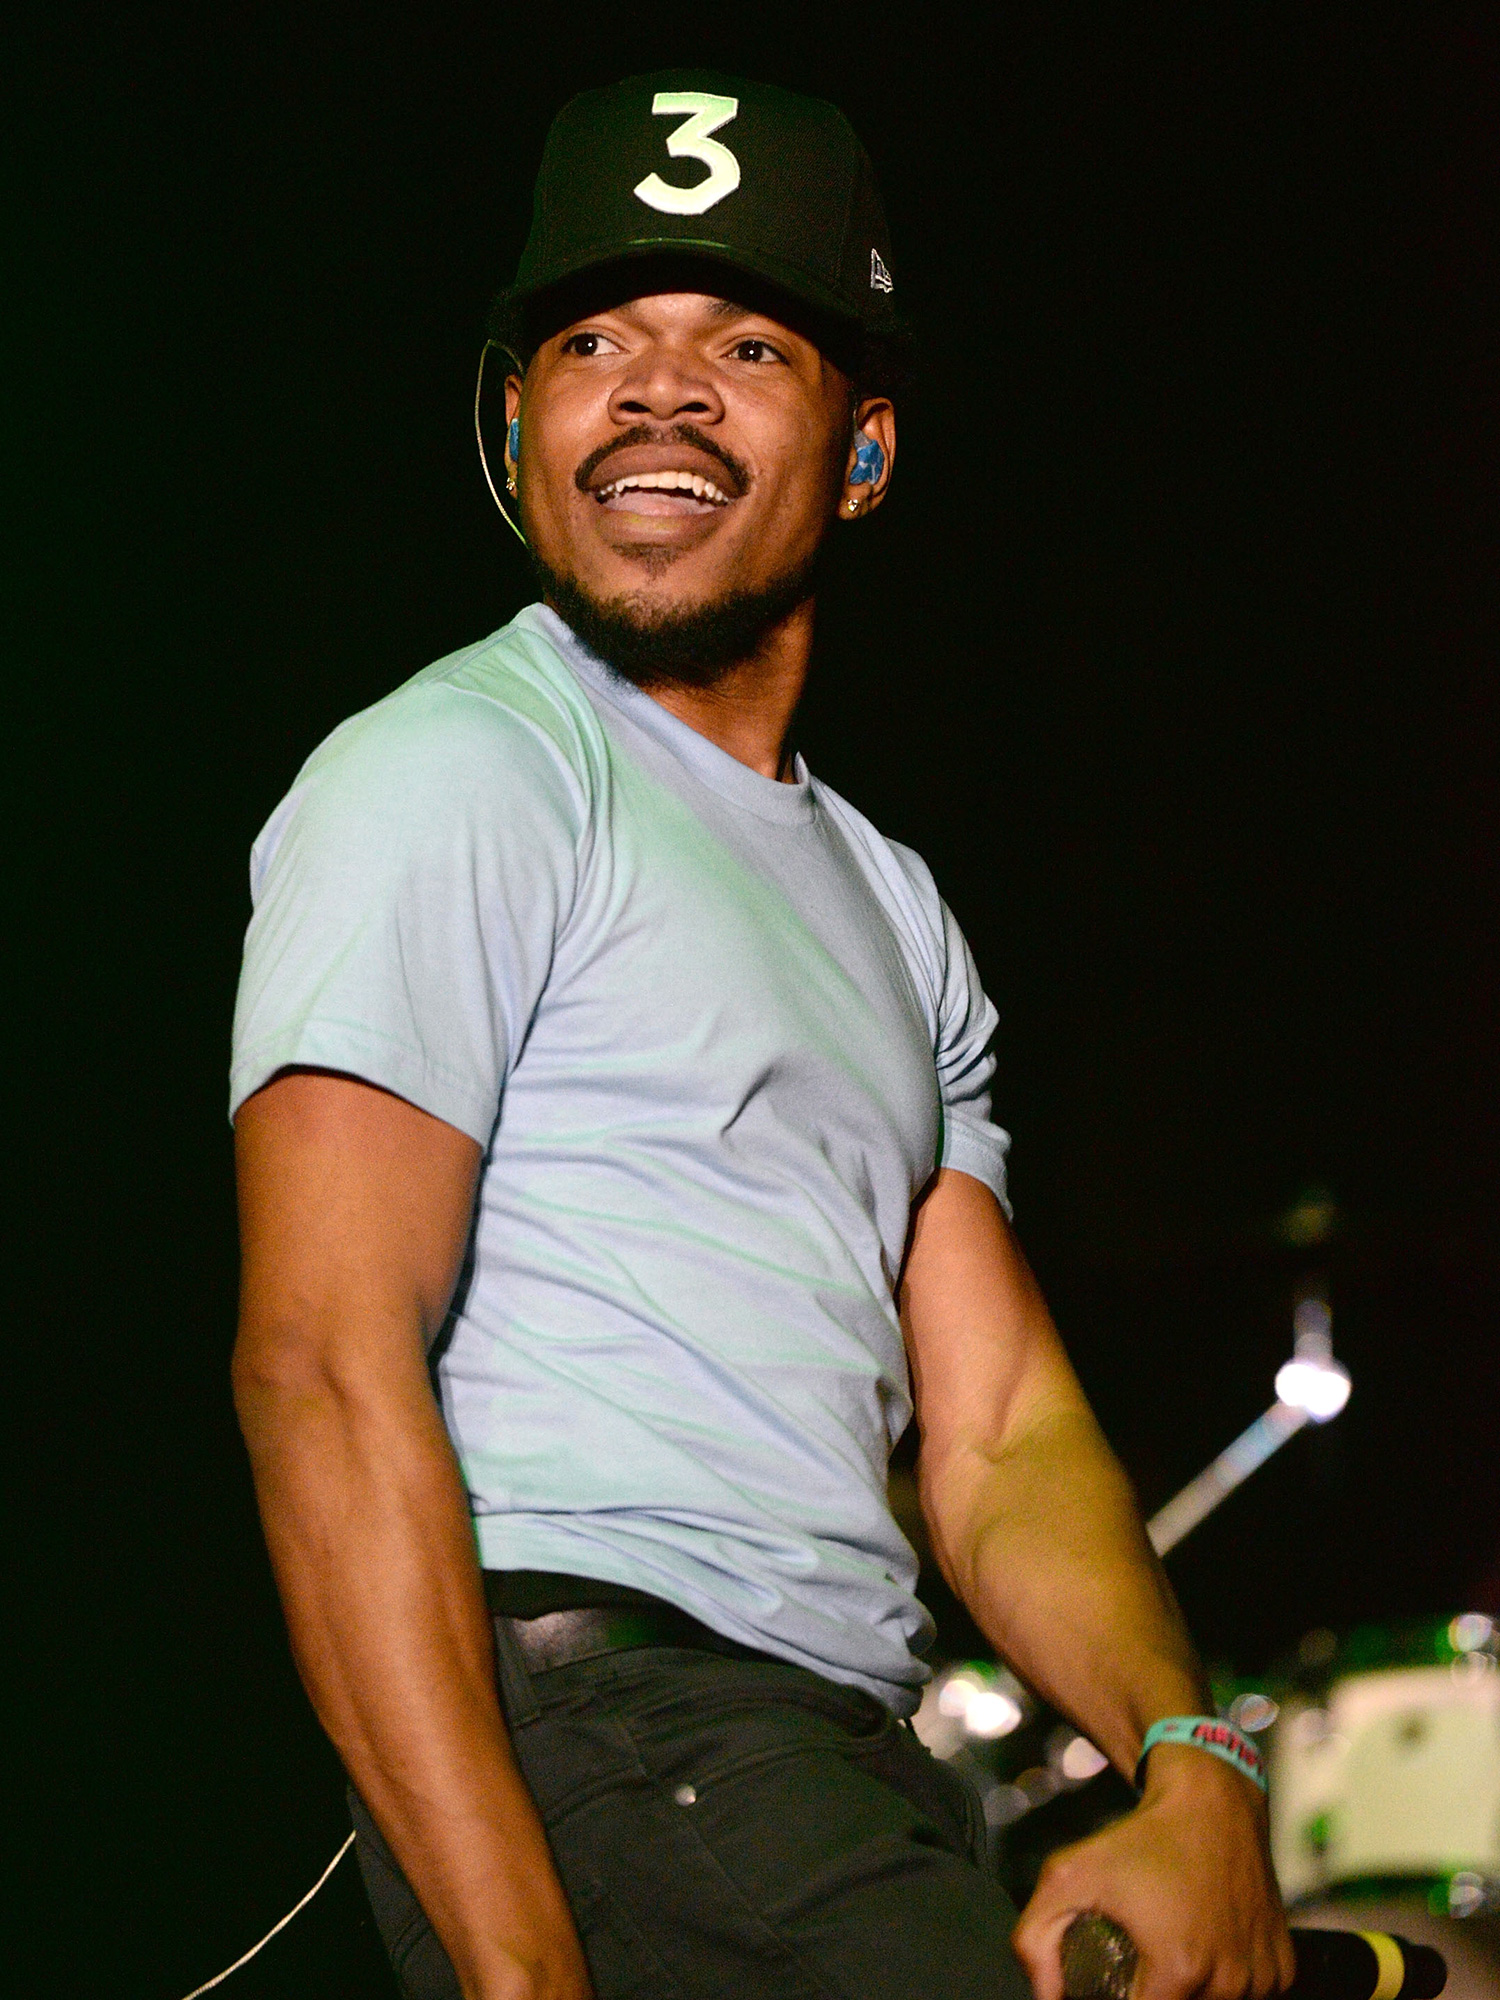 LOS ANGELES, CA - NOVEMBER 12: Musician Chance the Rapper performs onstage during the 5th annual Camp Flog Gnaw Festival at Exposition Park on November 12, 2016 in Los Angeles, California. (Photo by Scott Dudelson/WireImage )